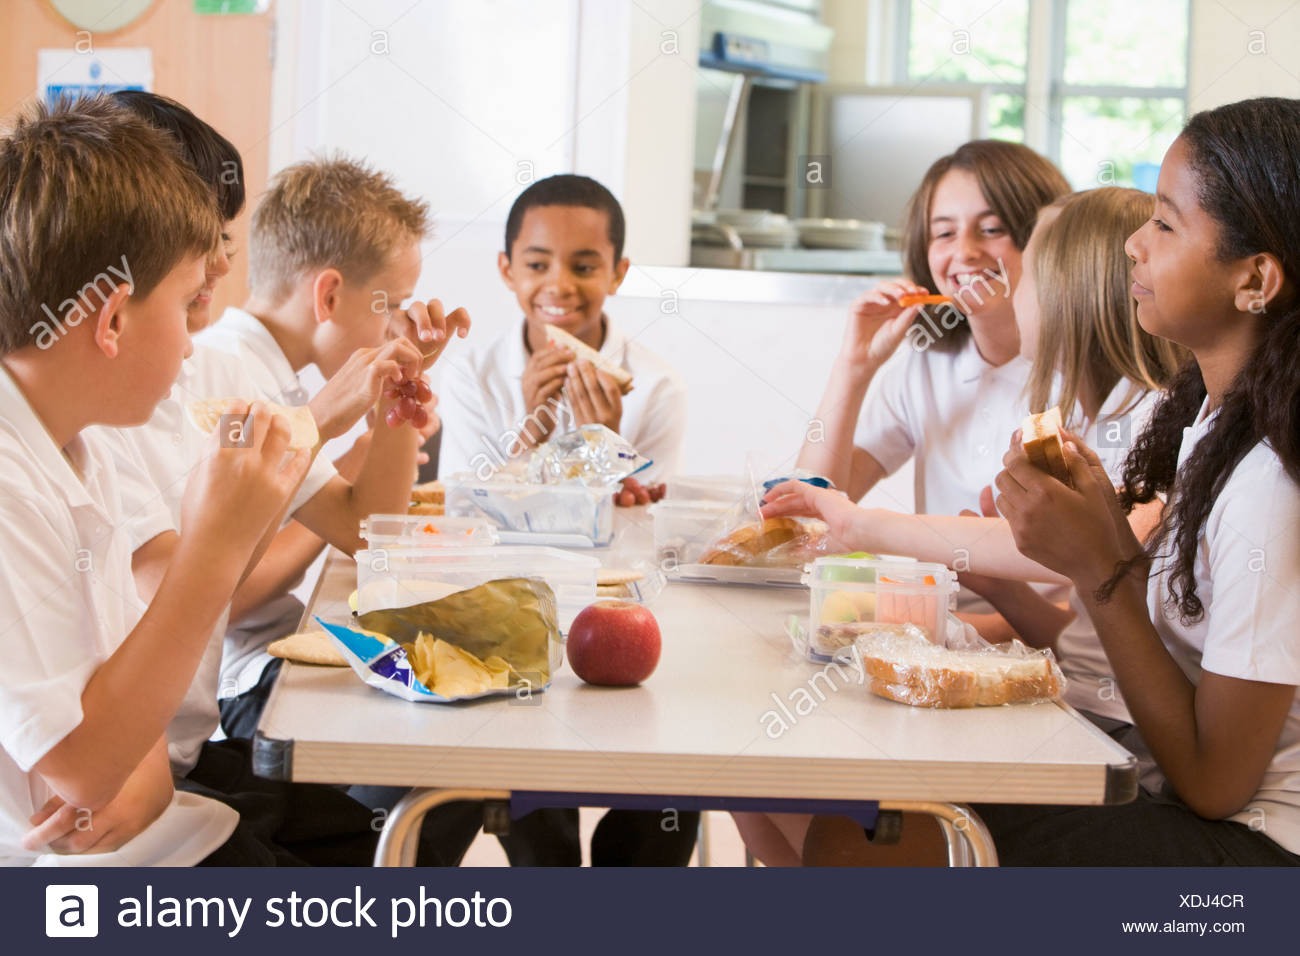 Students sitting at cafeteria table eating lunch (depth of field) - Stock Image